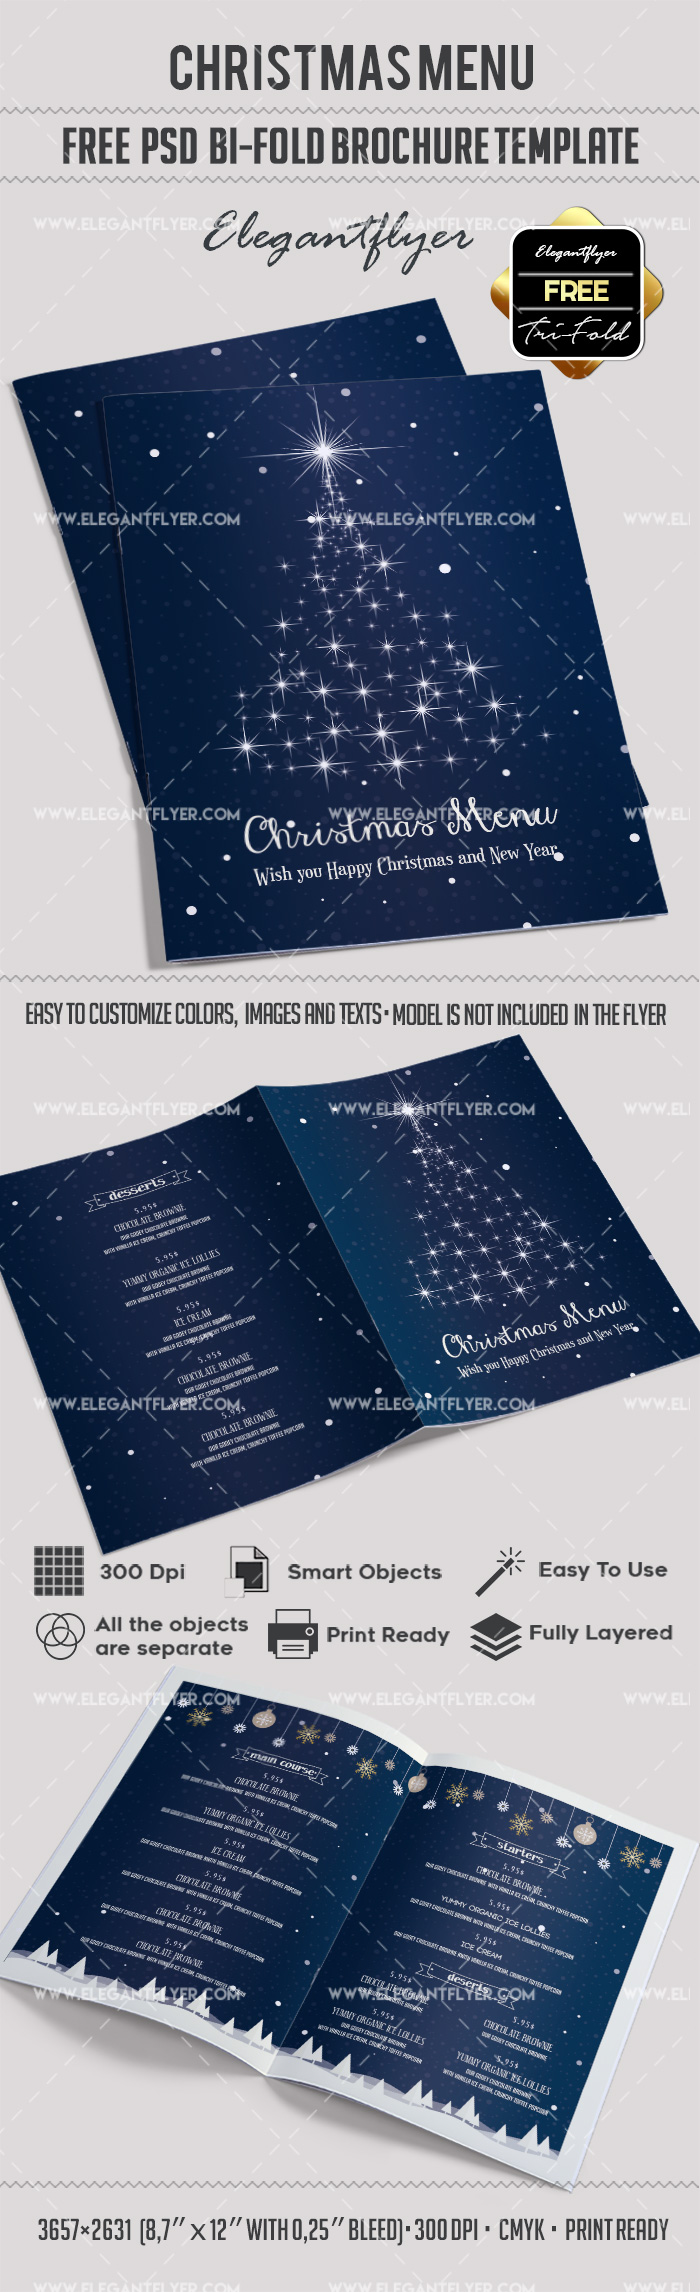 Free christmas menu bi fold psd brochure template by for Psd template brochure